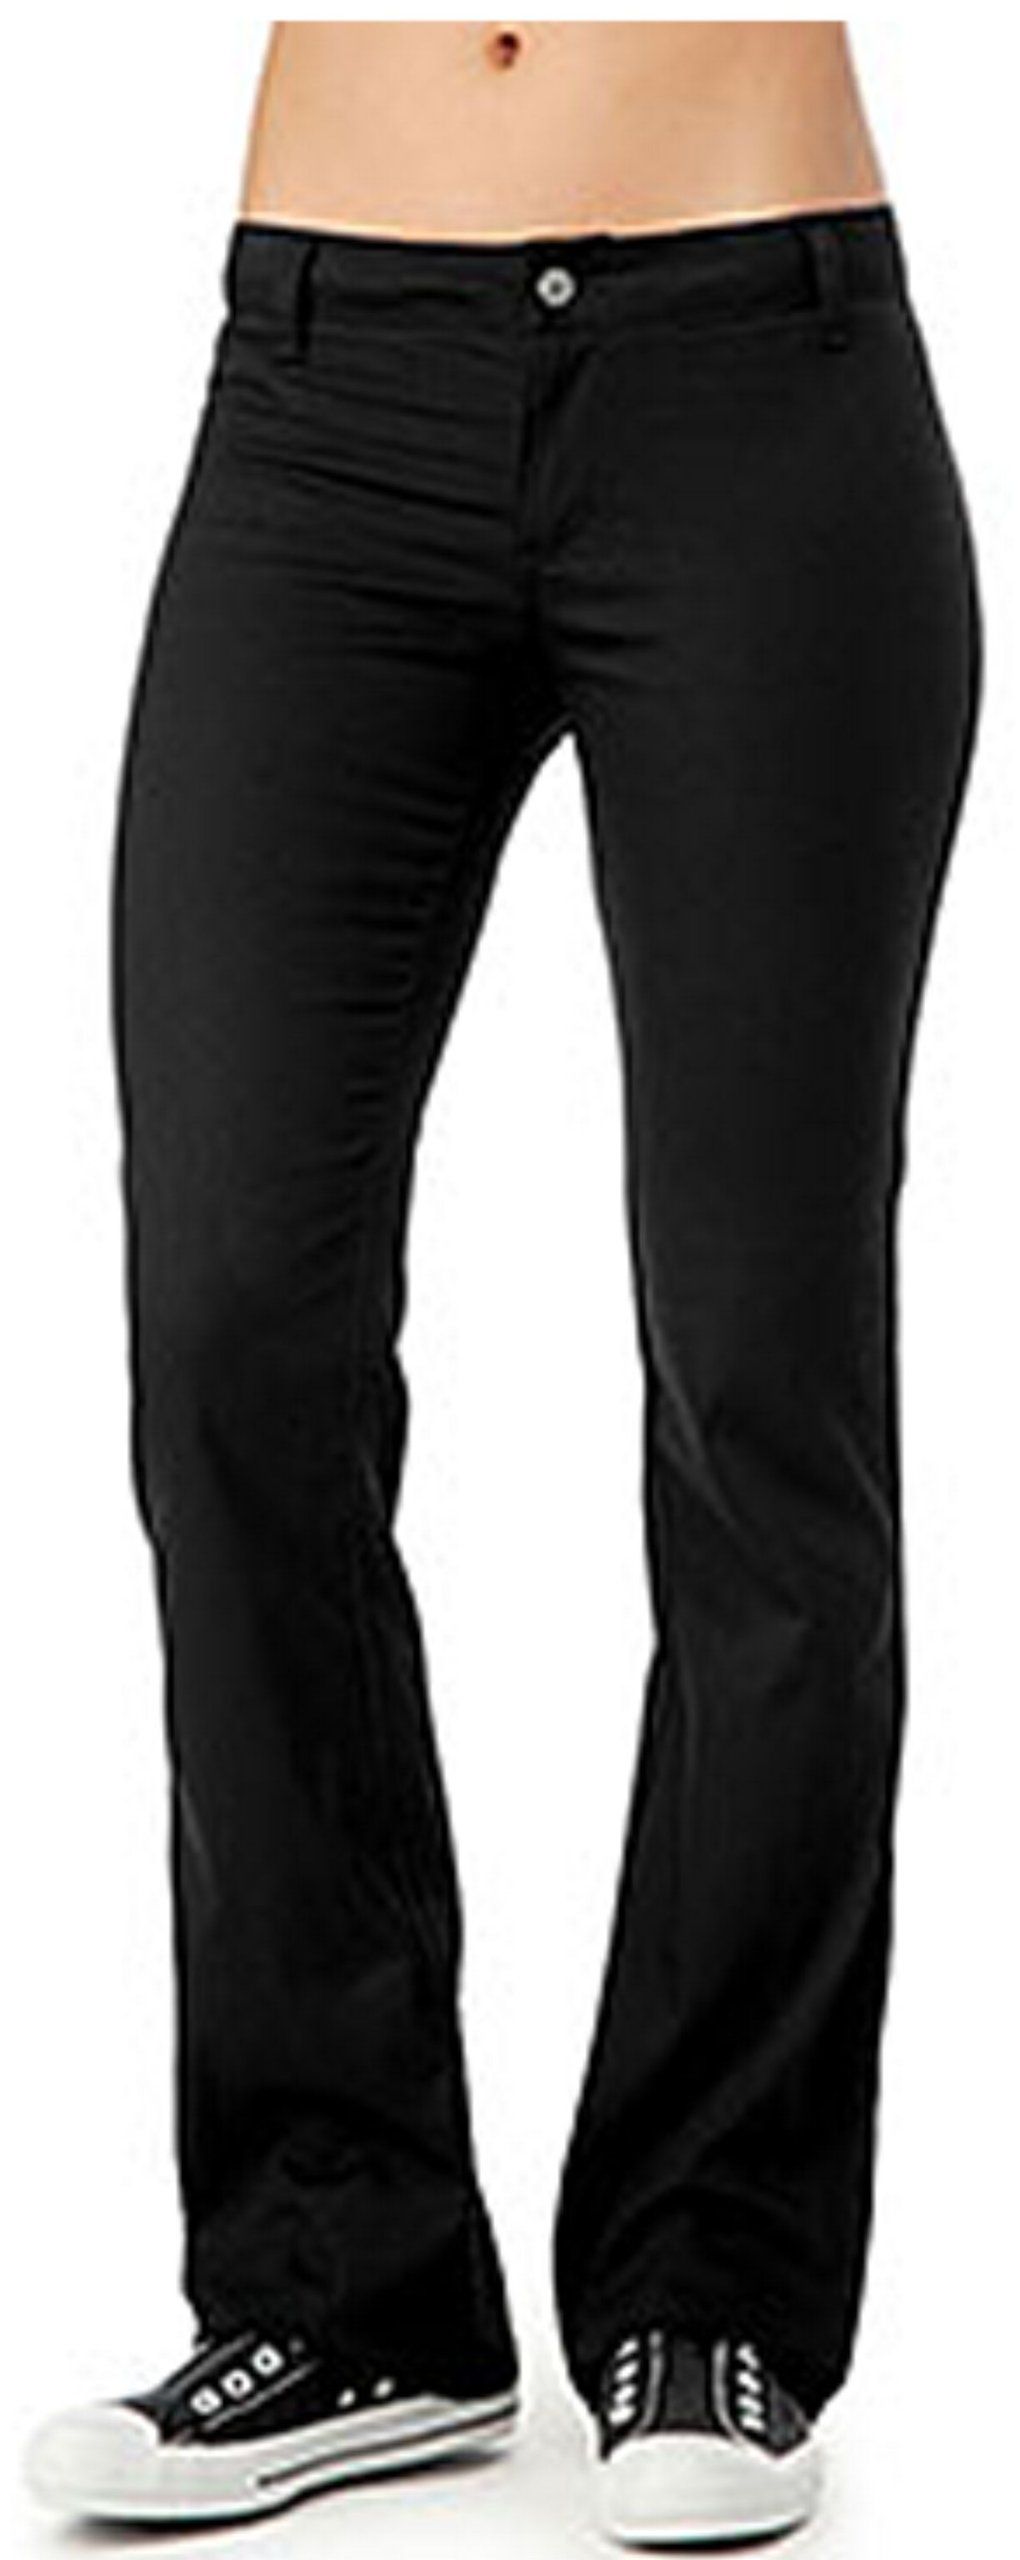 Dickies Girl Junior's Worker Boot Cut Pant, Black, 5/27 by Dickies Girl